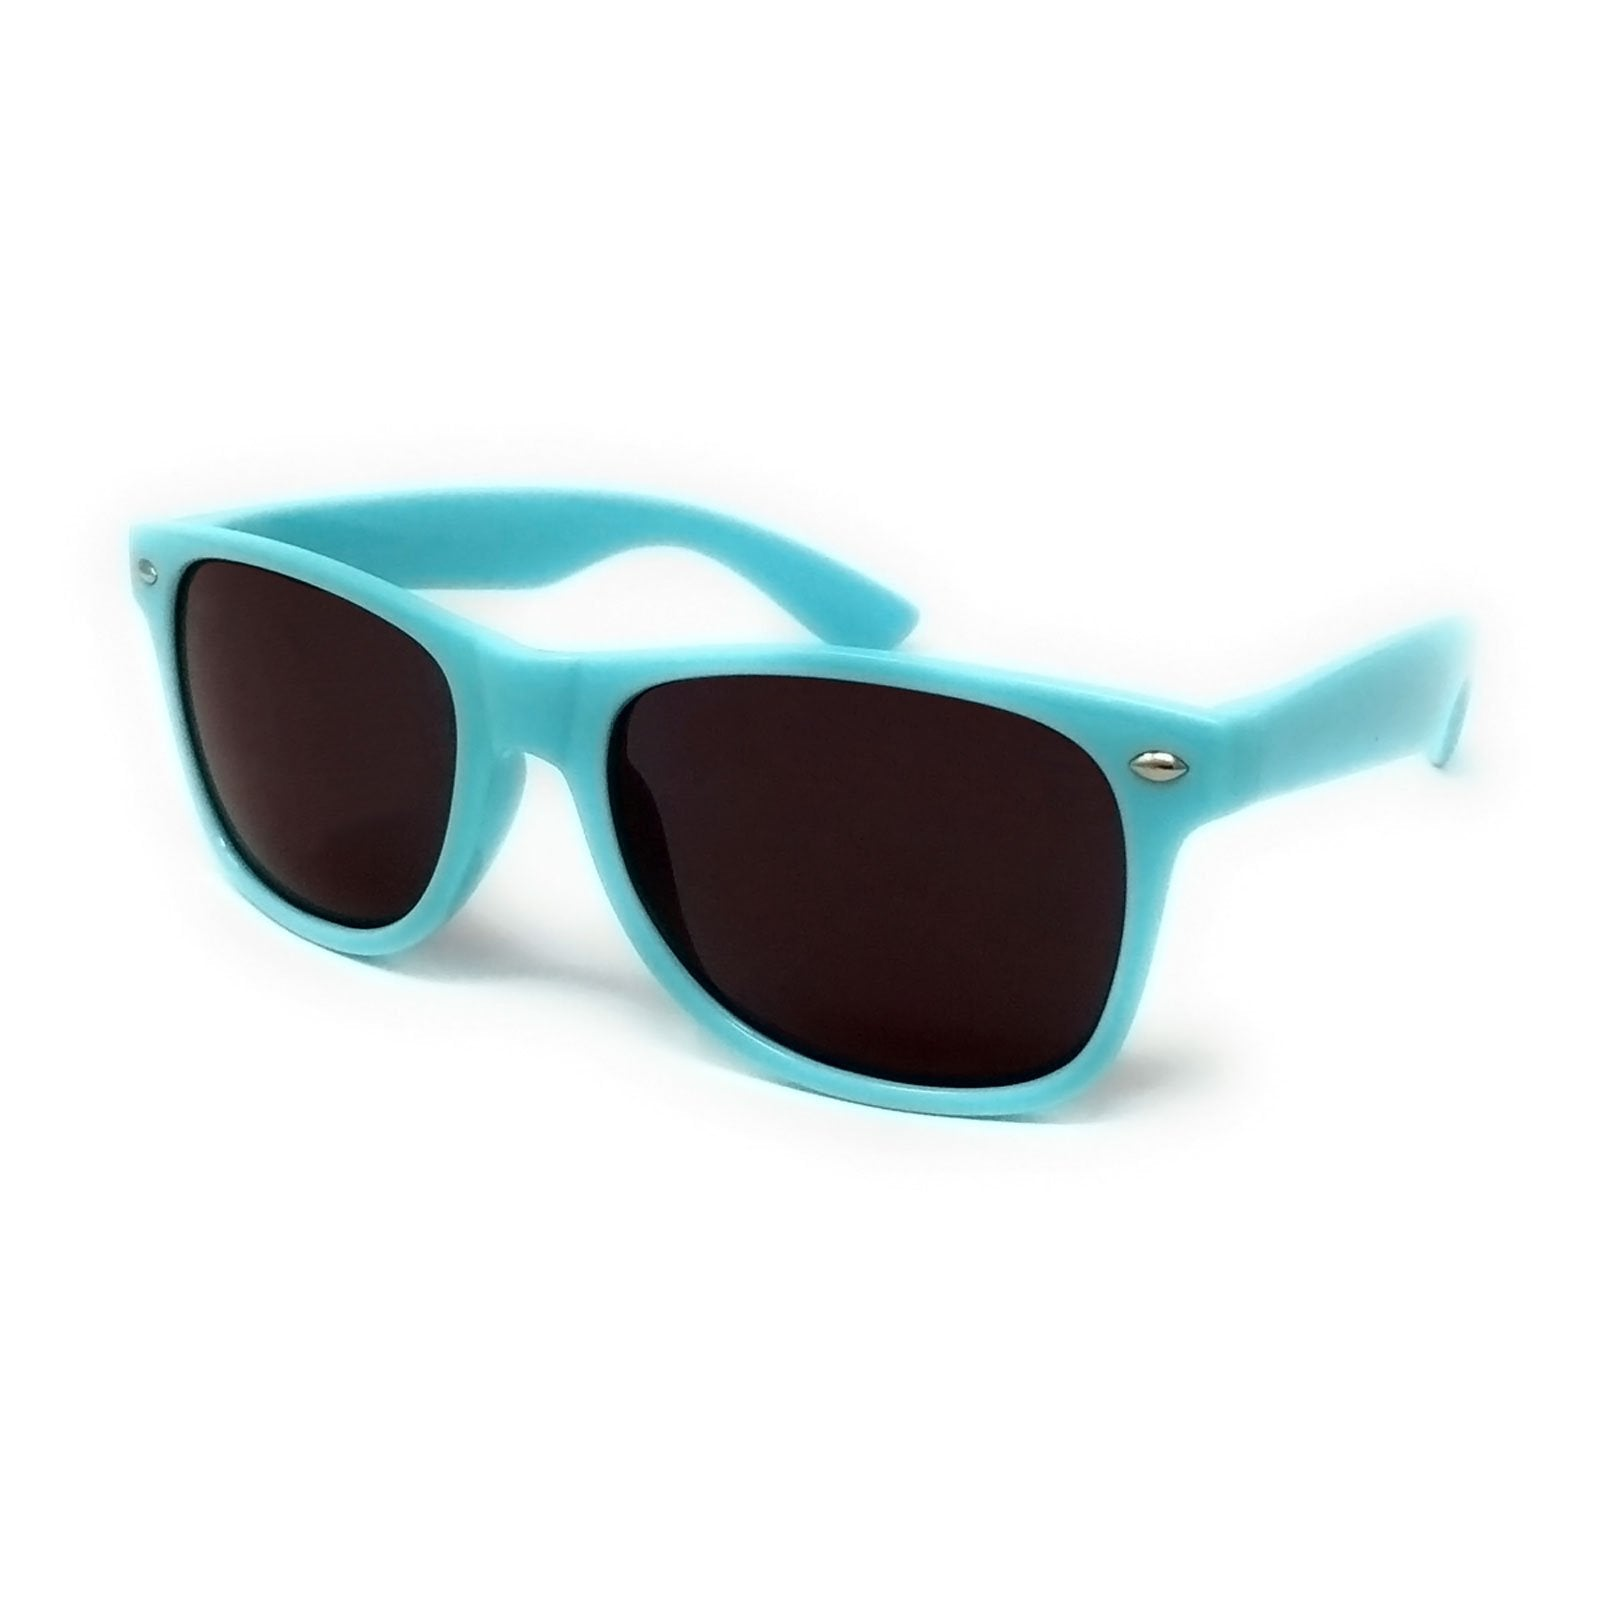 Wholesale Classic Sunglasses - Sky Blue Frame, Black Lens